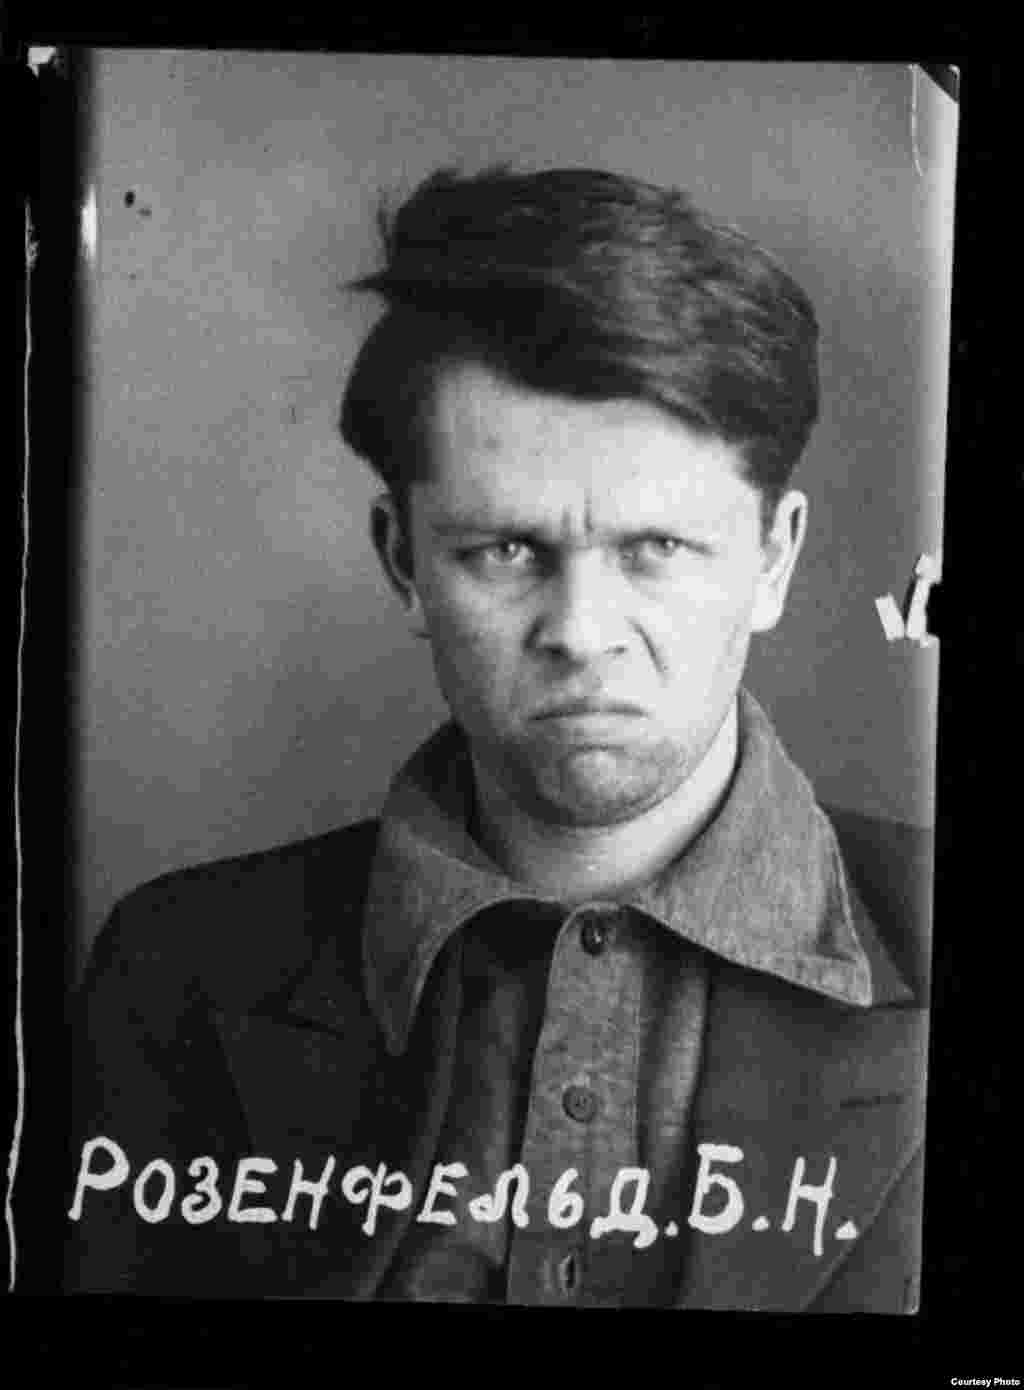 Boris Nikolayevich Rozenfeld: Russian Jew; born 1908 in St. Petersburg; higher education; no party affiliation; engineer of the Mosenergo company; lived in Moscow, Malaya Nikitinskaya Street 16/105. Arrested on January 31, 1935. Sentenced to five years' imprisonment. Prisoner of Byelomoro-Baltisky complex of camps in Karelia. Transported from the camp to Moscow on April 12, 1937. Sentenced to death and executed on July 13, 1937. Rehabilitated in 1990.